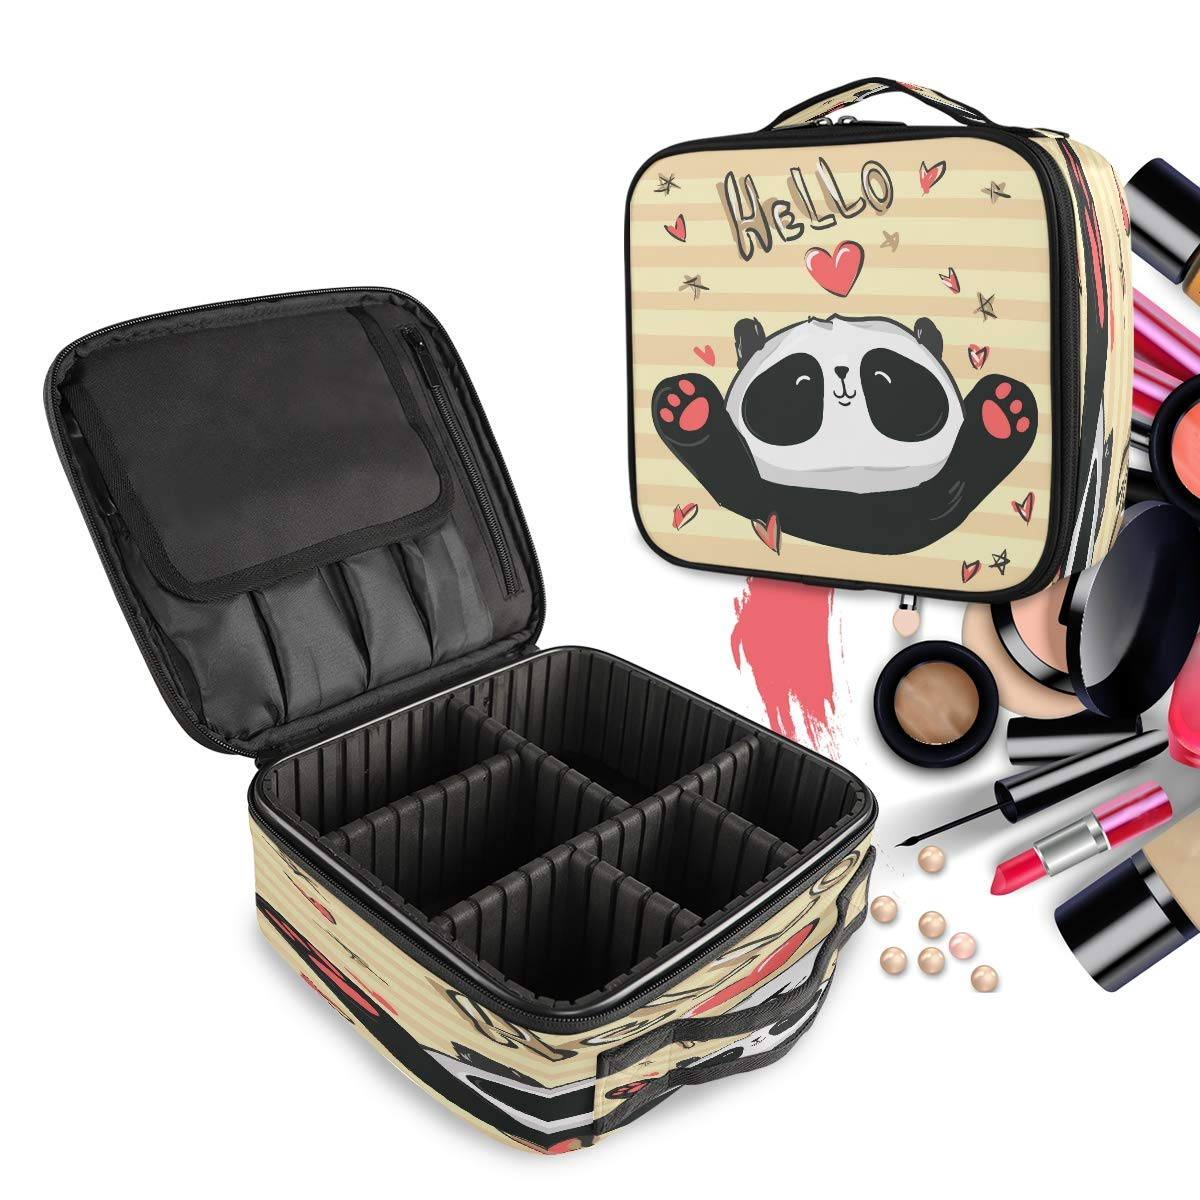 Travel Makeup Case Hello Love Heart Animal Panda Funny Cute Cosmetic Bag Box Professional Train Case Large Make Up Storage Organizer with Adjustable Dividers & Brush Section for Women Girls Hard Shell